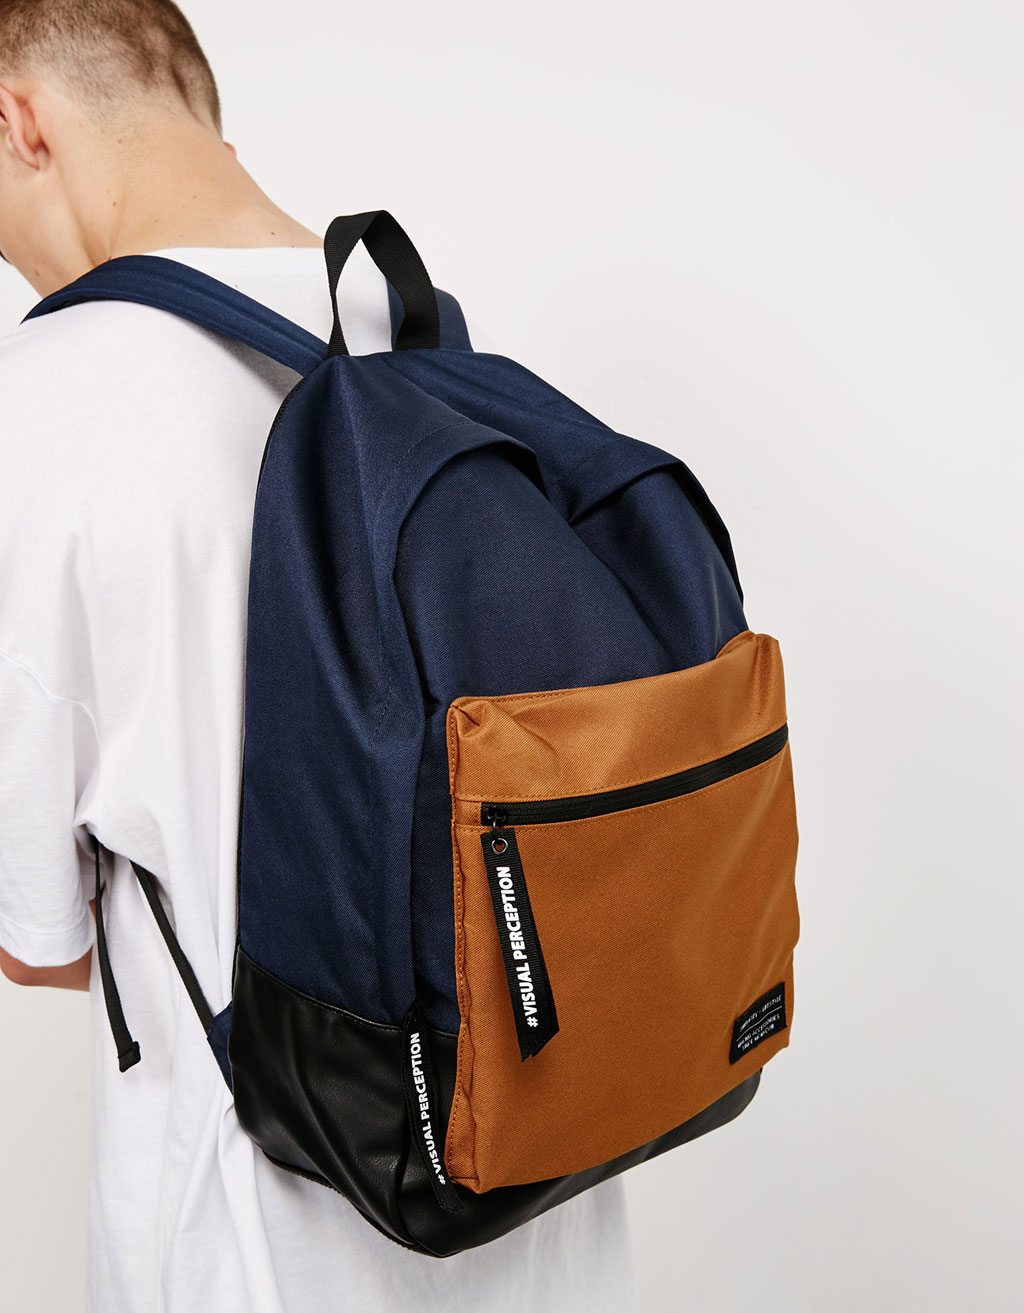 Mochila 'Back to school'